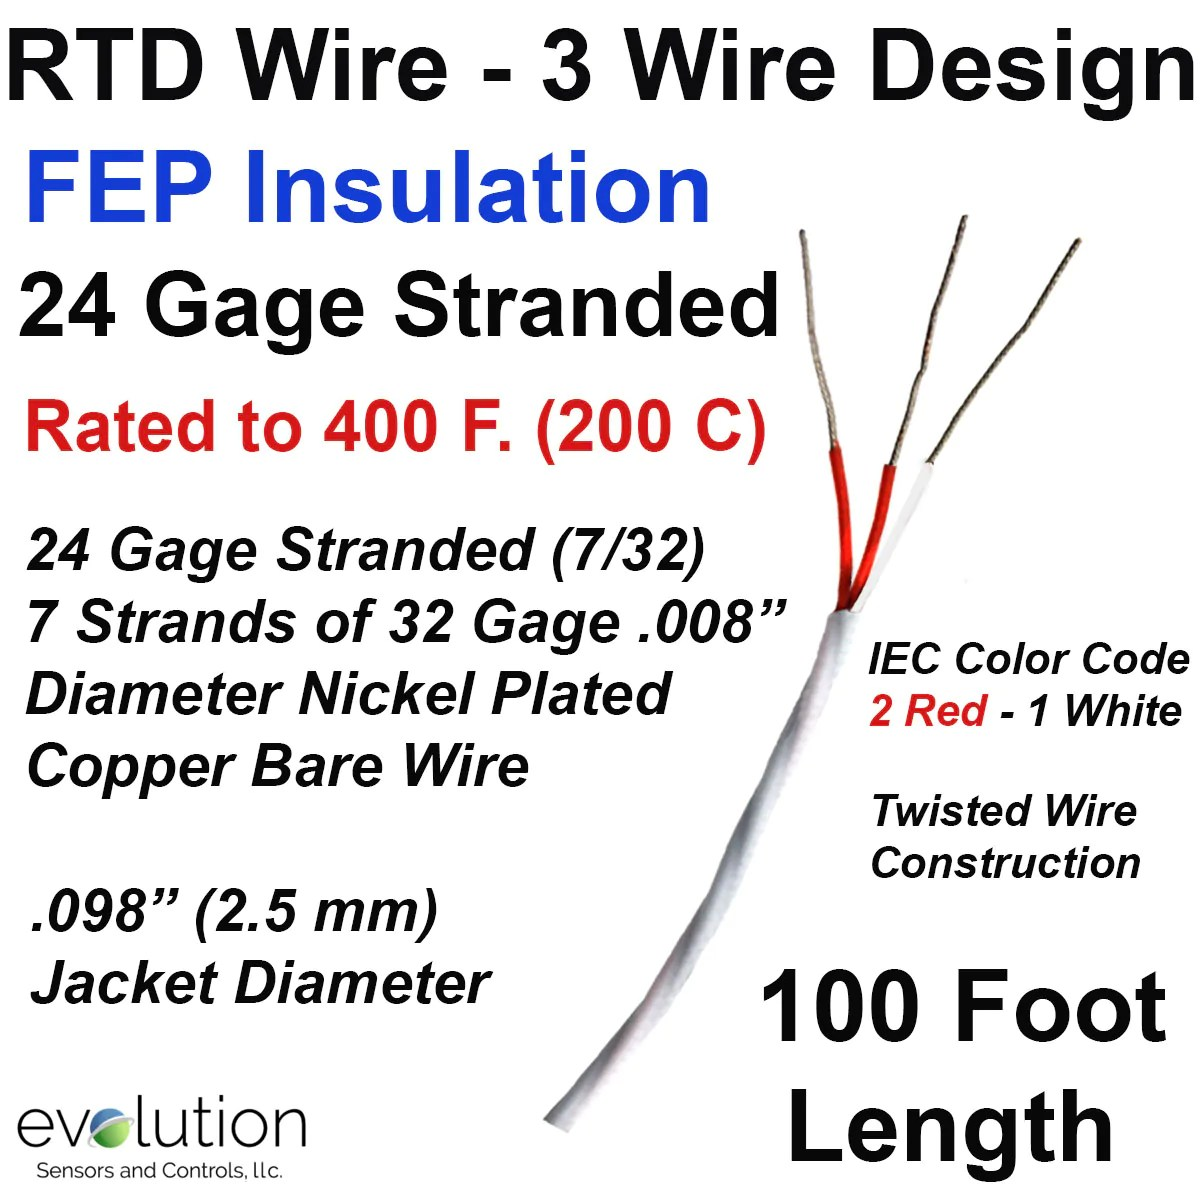 hight resolution of rtd wiring color code wiring diagram inside rtd 3 wire color code rtd wiring color code